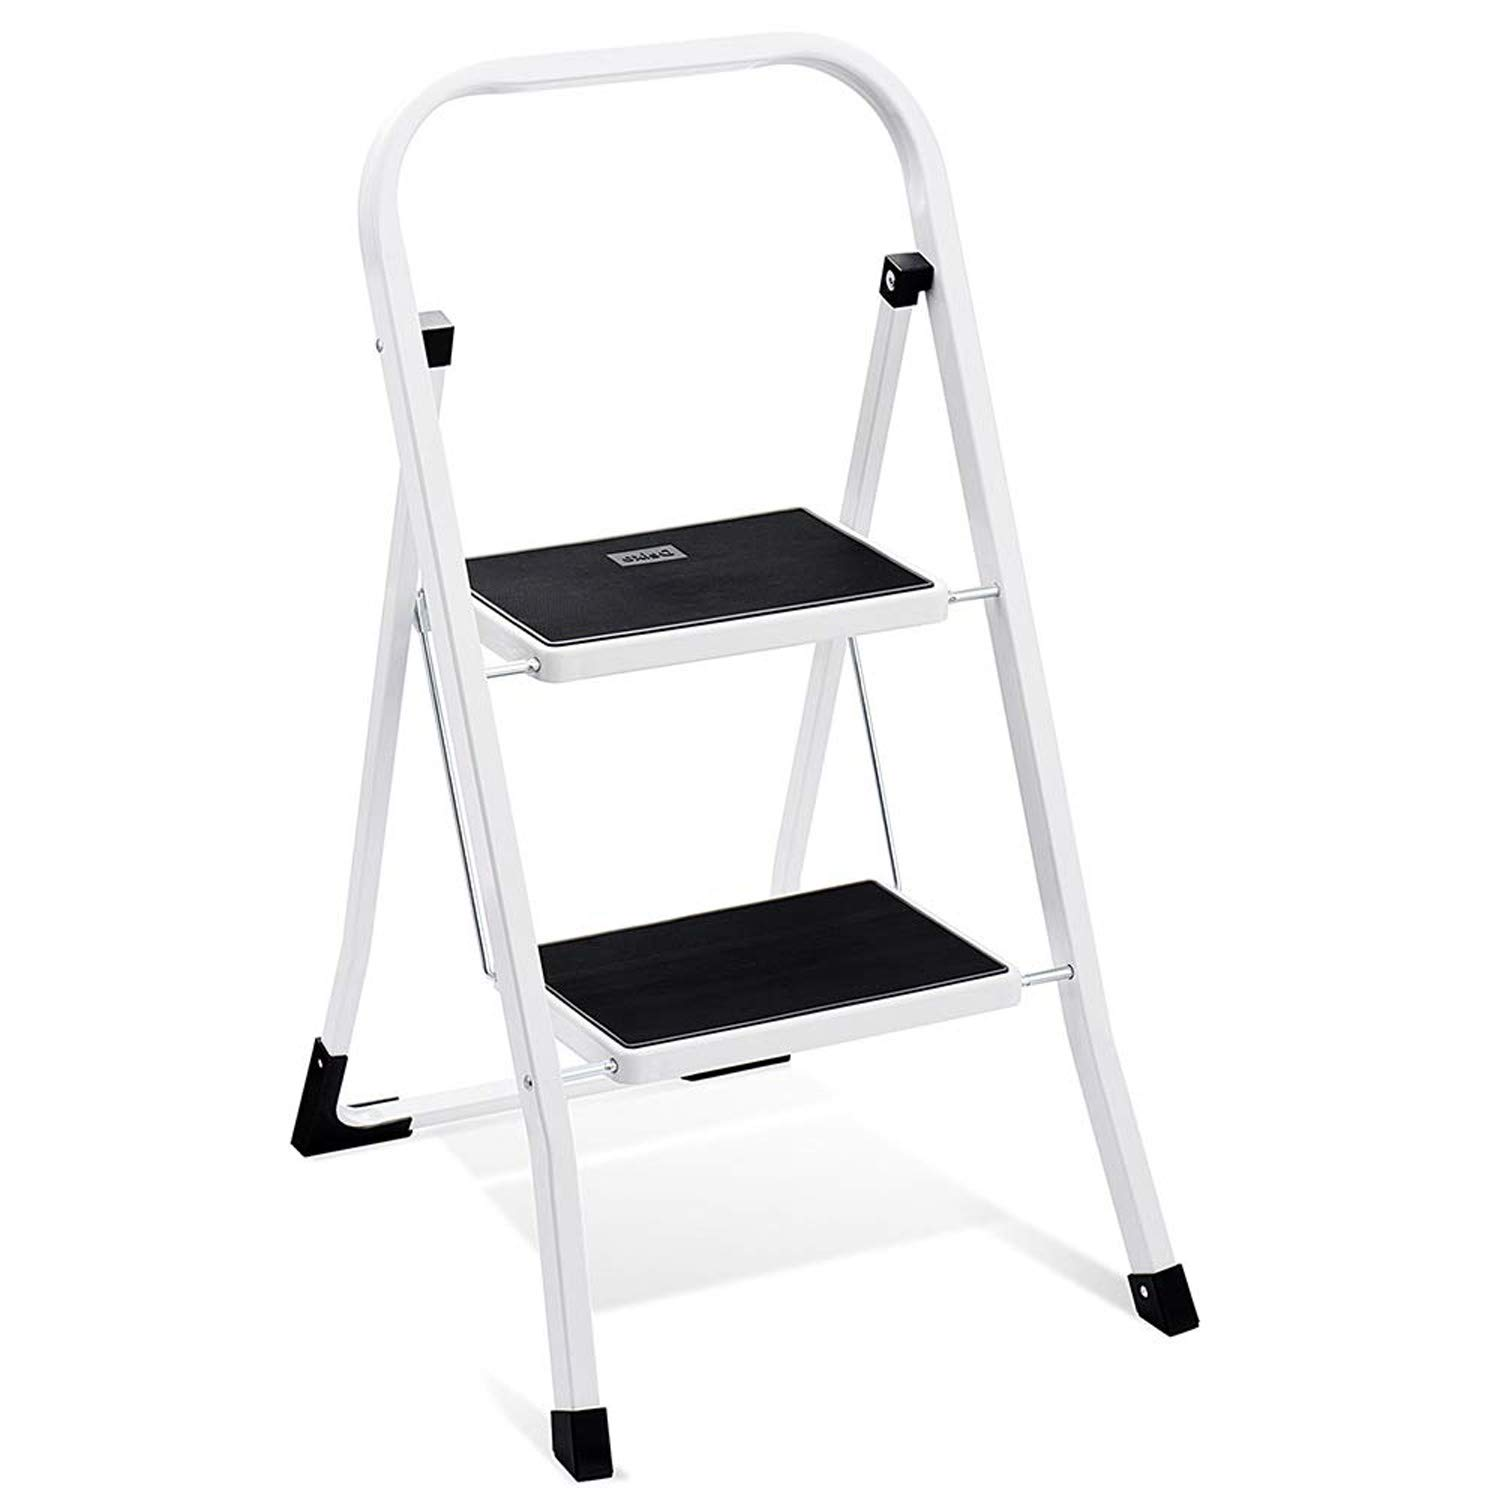 Delxo 2 Step Ladder Folding Step Stool Ladder with Handgrip Anti-Slip Sturdy and Wide Pedal Multi-Use for Household and Office Portable Step Stool Steel 330lbs White